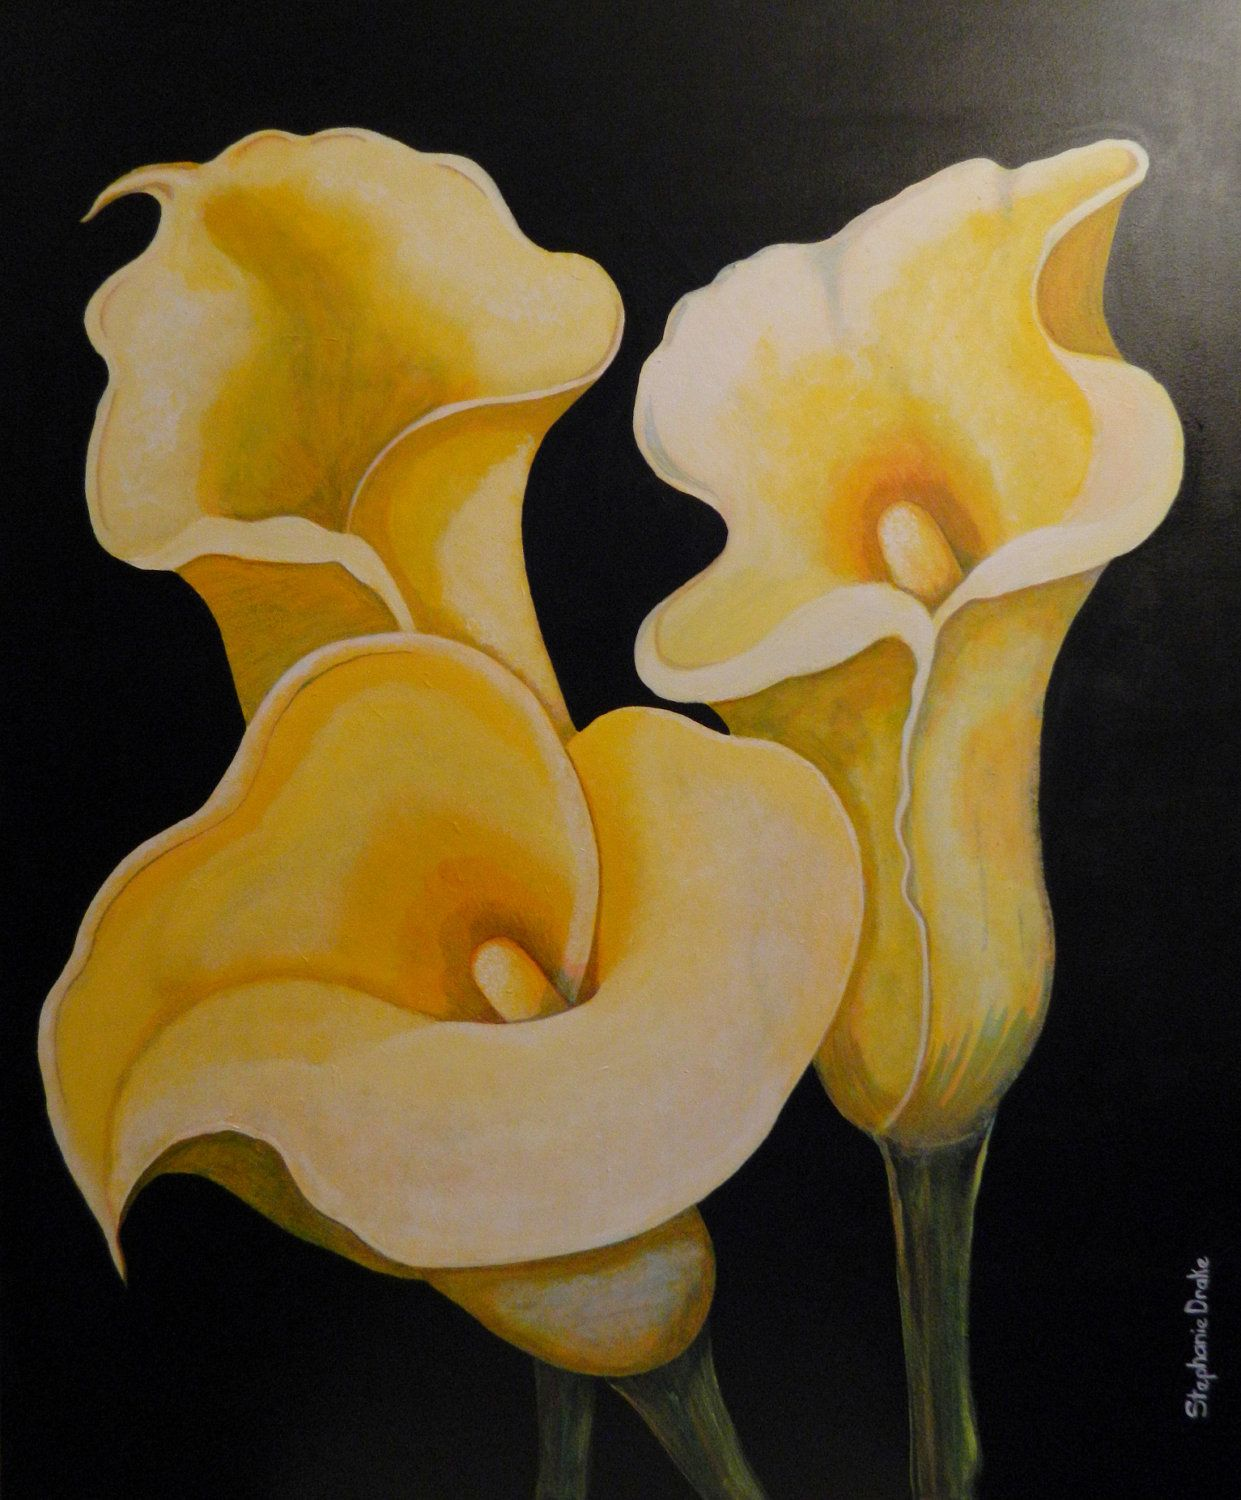 Yellow calla lily paintings my style pinterest lily painting yellow calla lily paintings dhlflorist Images